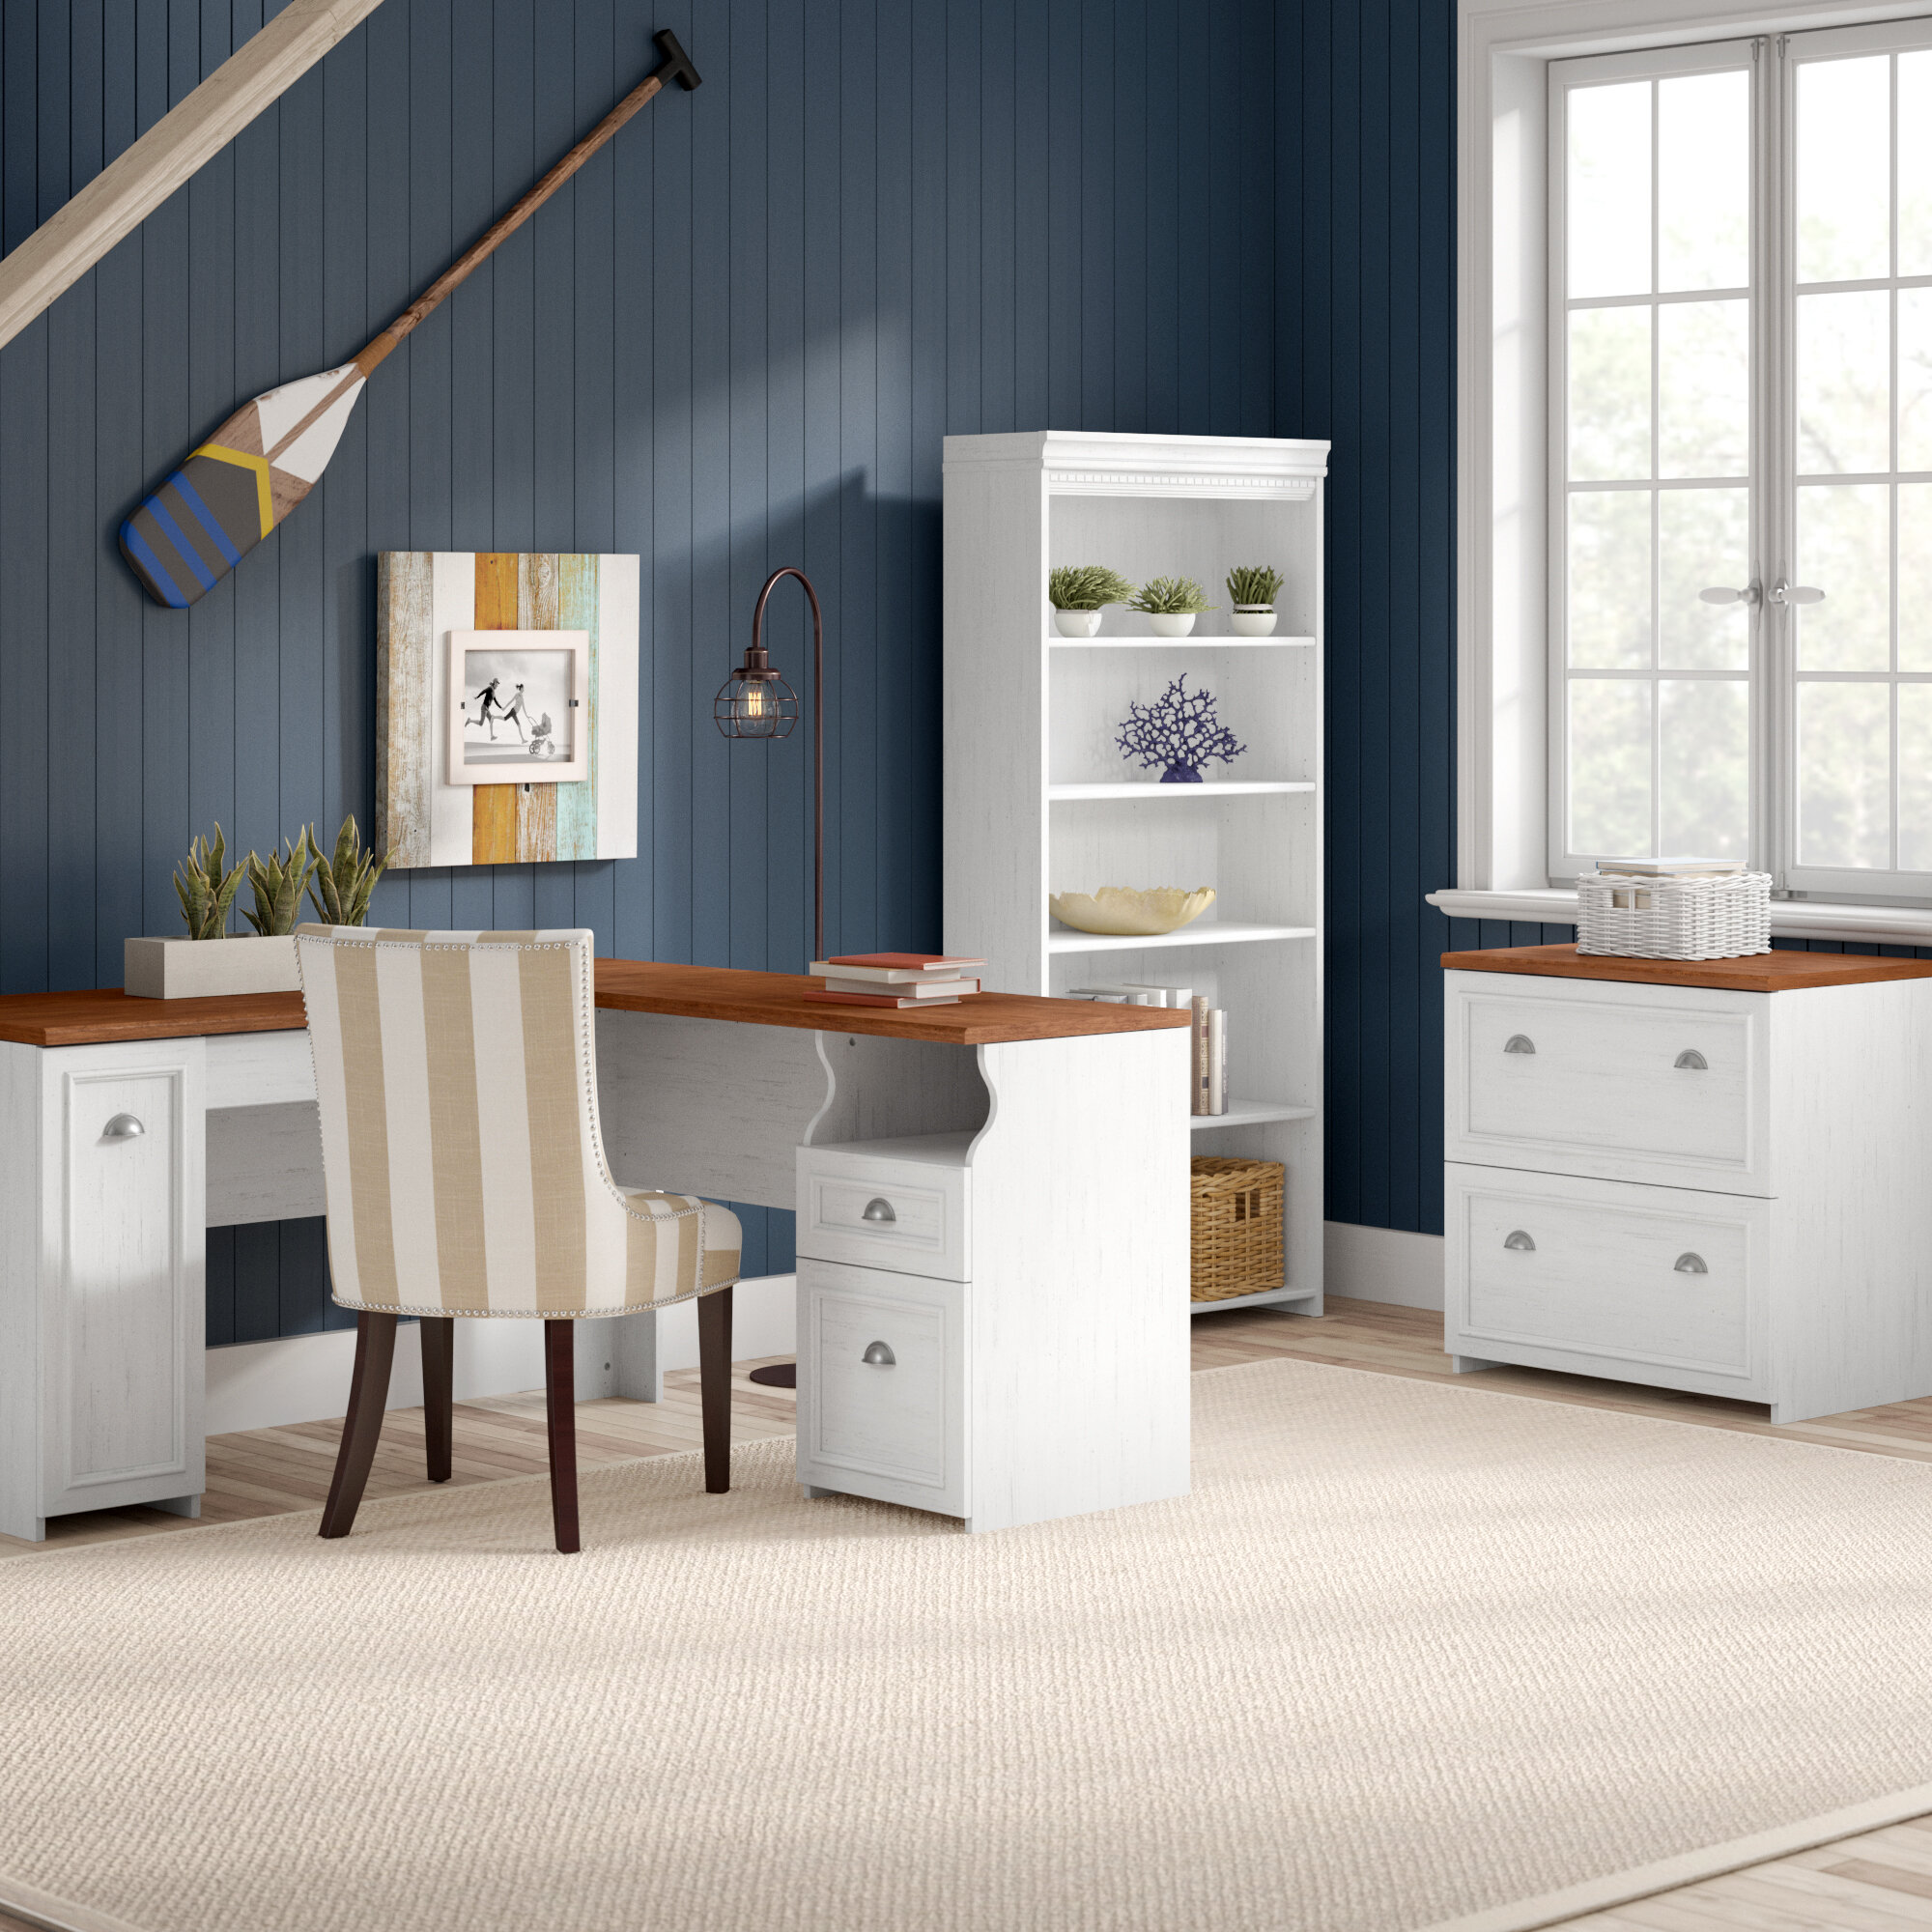 Beachcrest Home Oakridge Piece LShape Desk Office Suite Reviews - Oakridge bedroom furniture